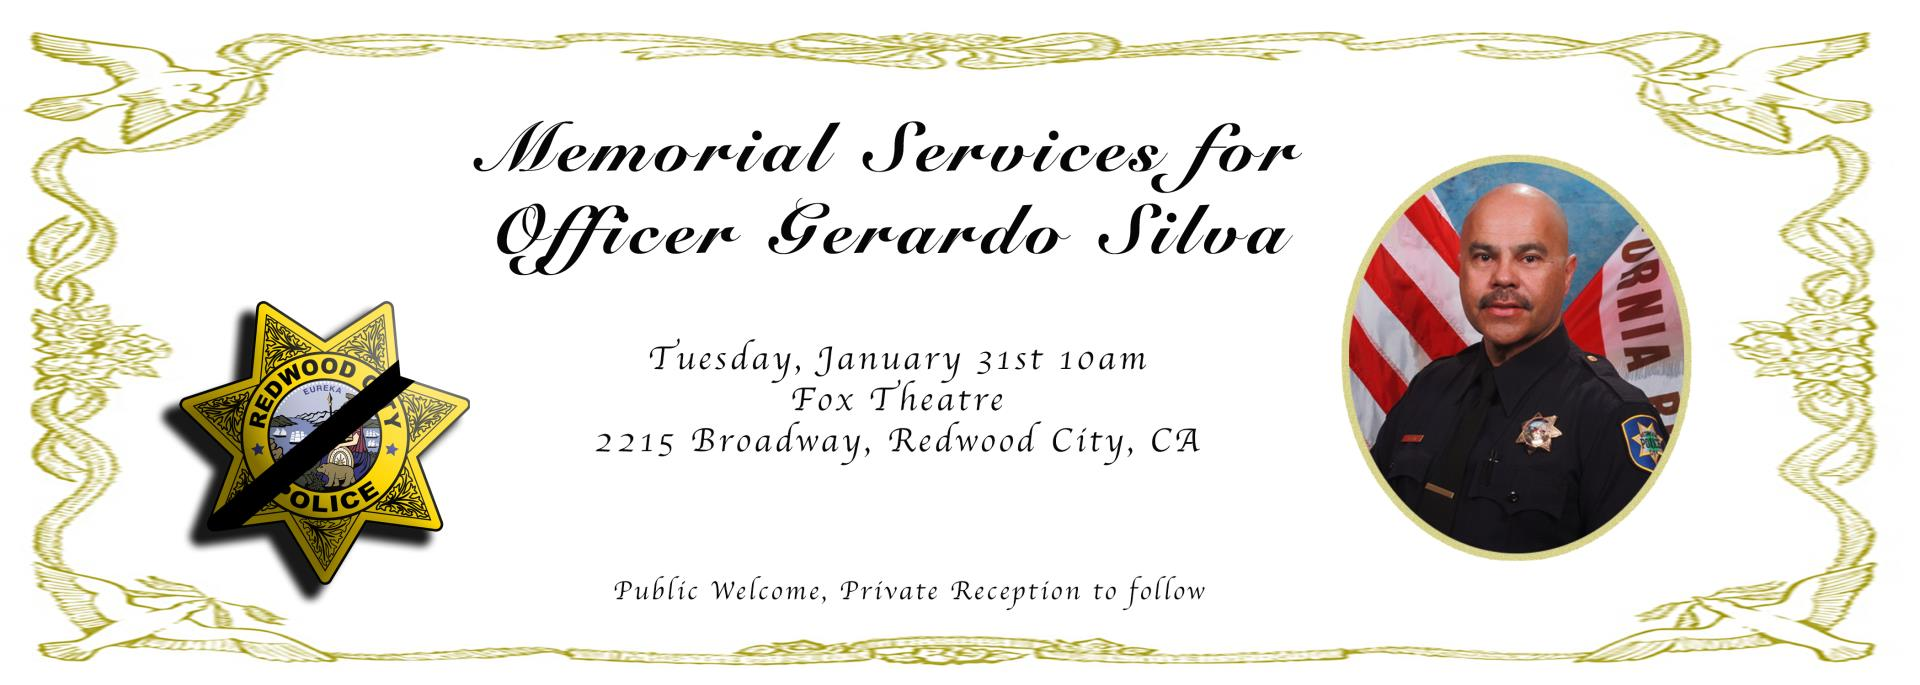 Redwood+City+made+a+public+announcement+of+Silva%27s+memorial+on+their+website.